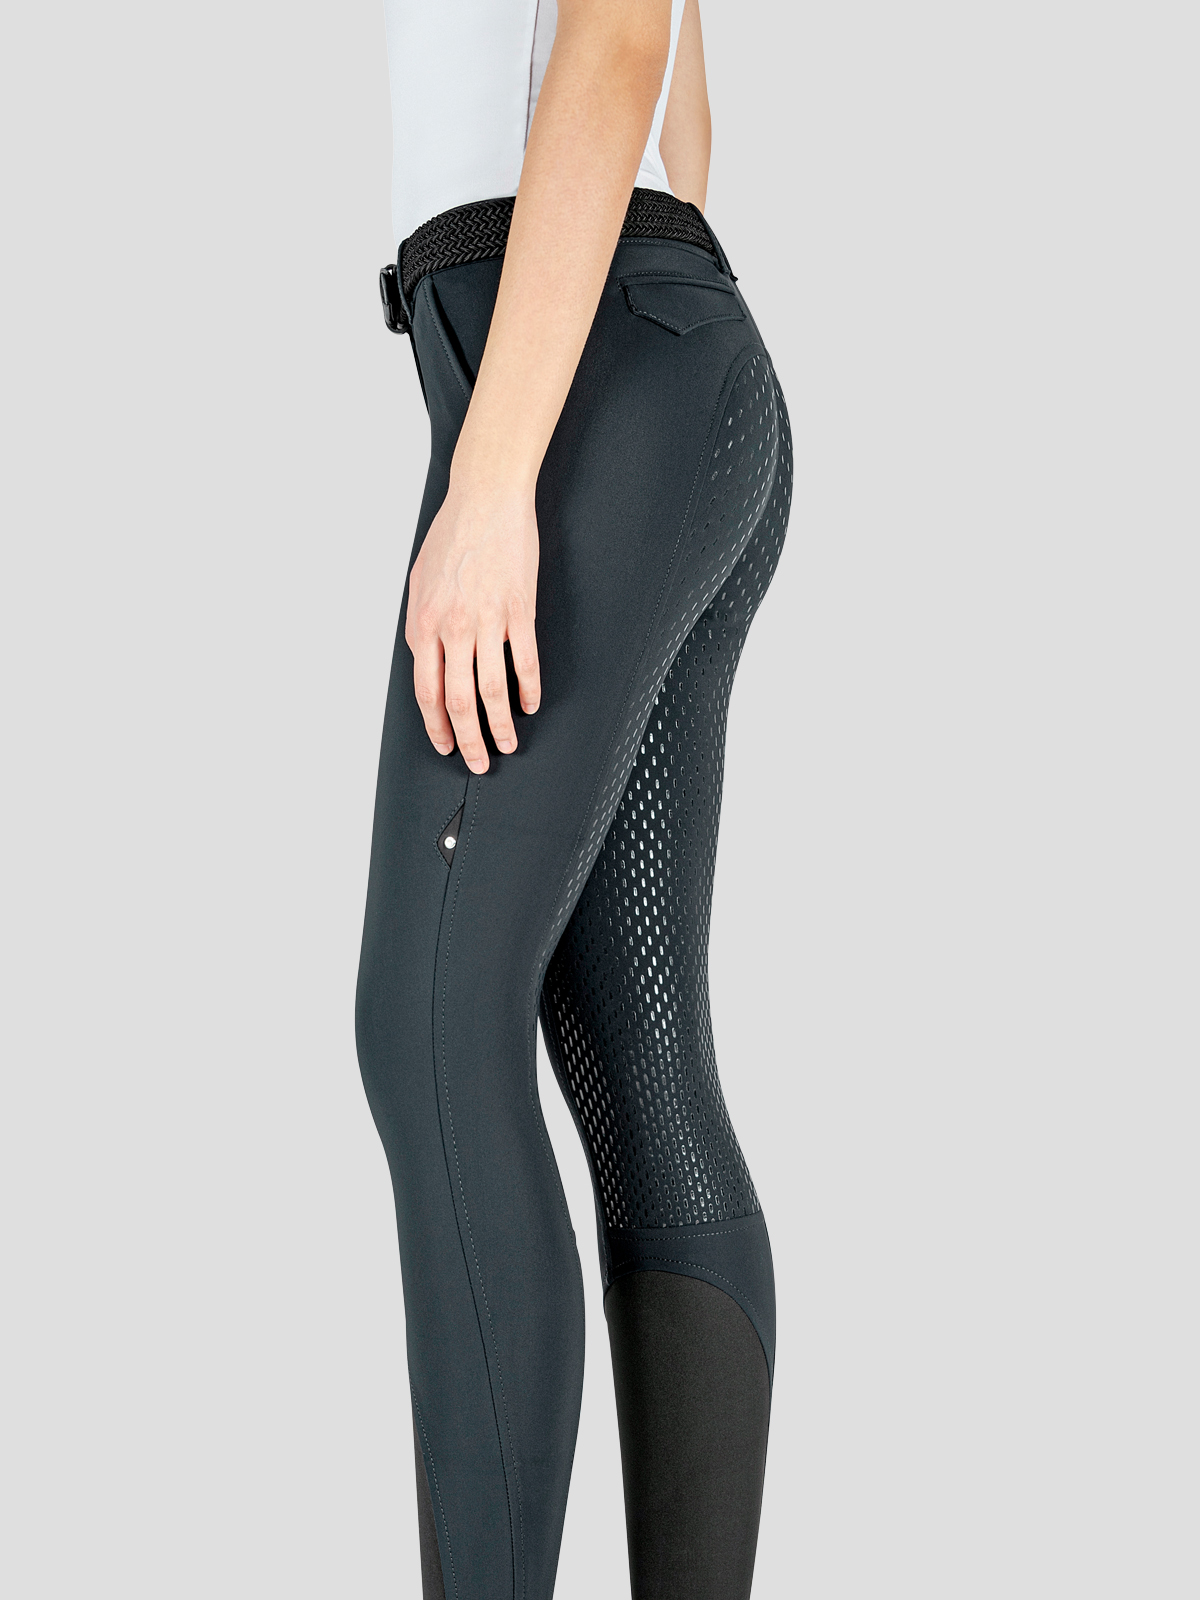 JULIK WOMEN'S FULL GRIP RIDING BREECHES IN B-MOVE FABRIC 8